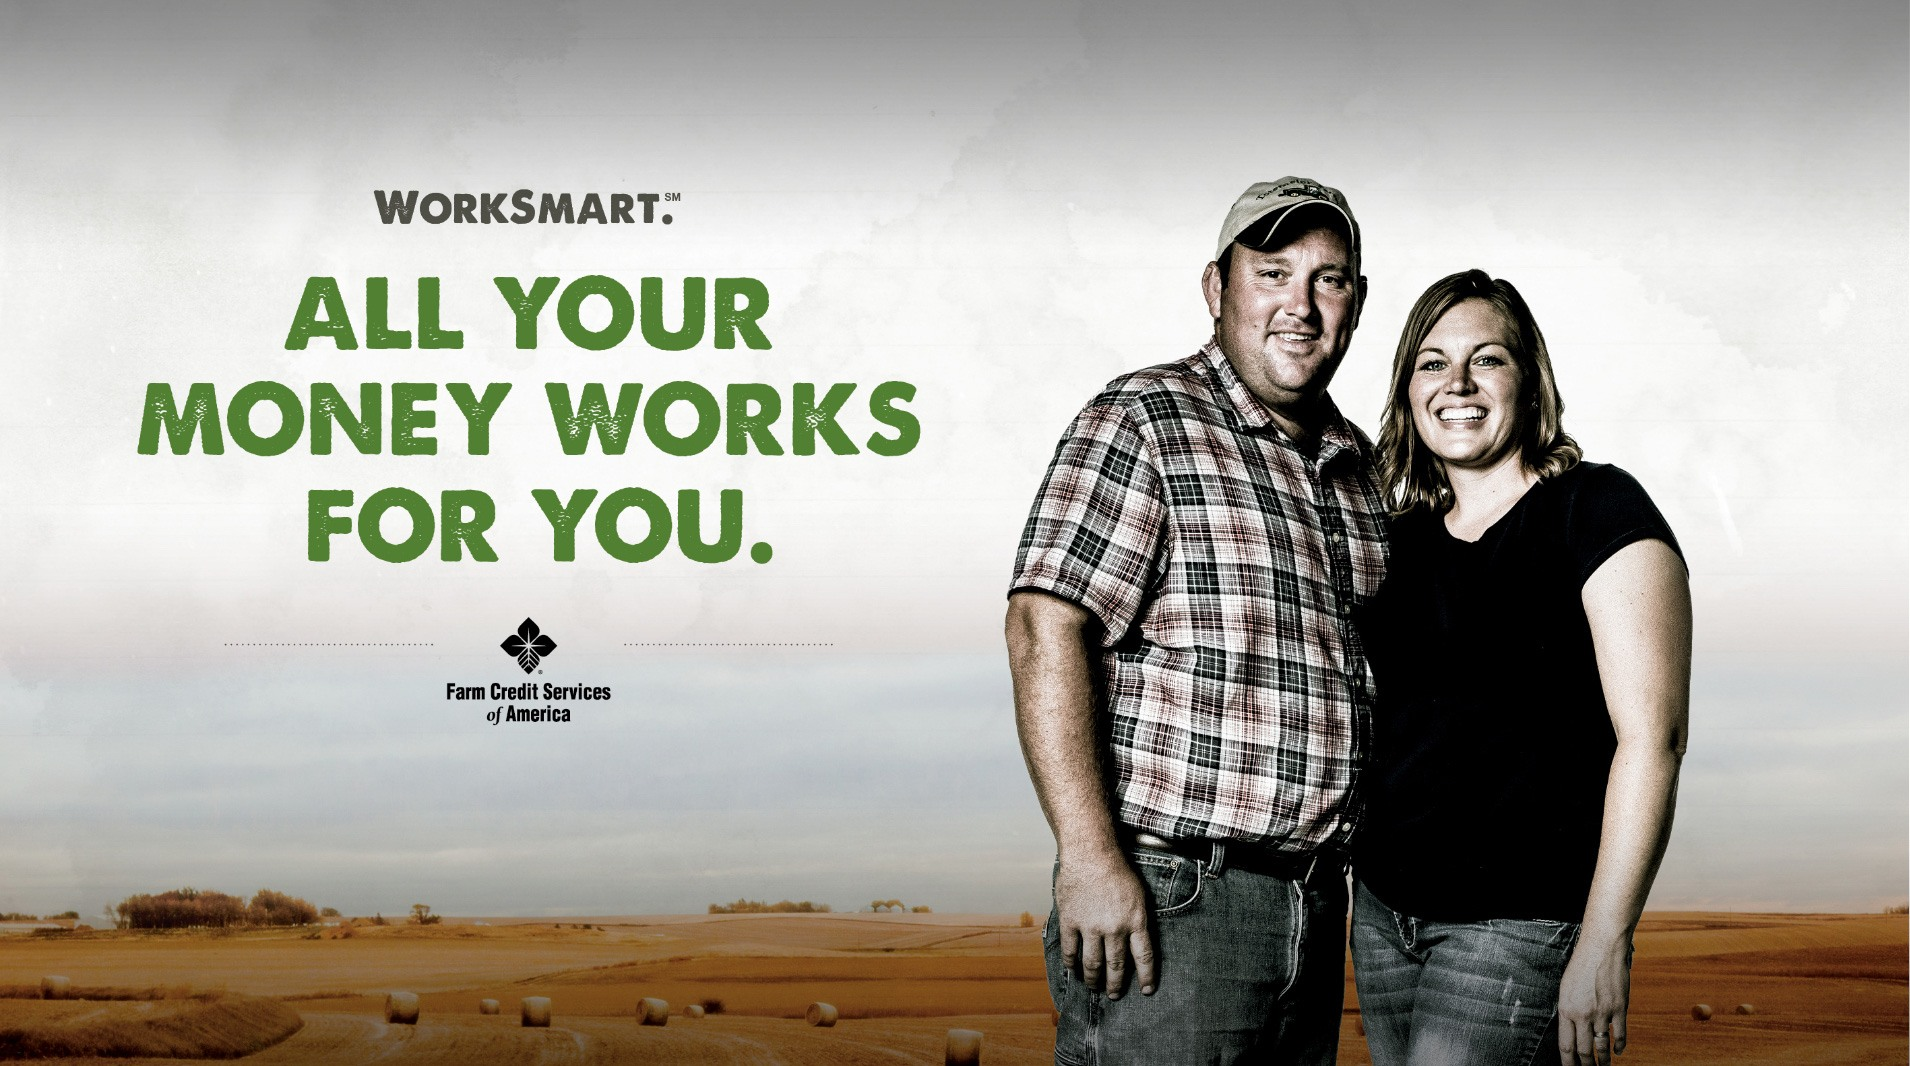 WorkSmart Agriculture Advertising Example